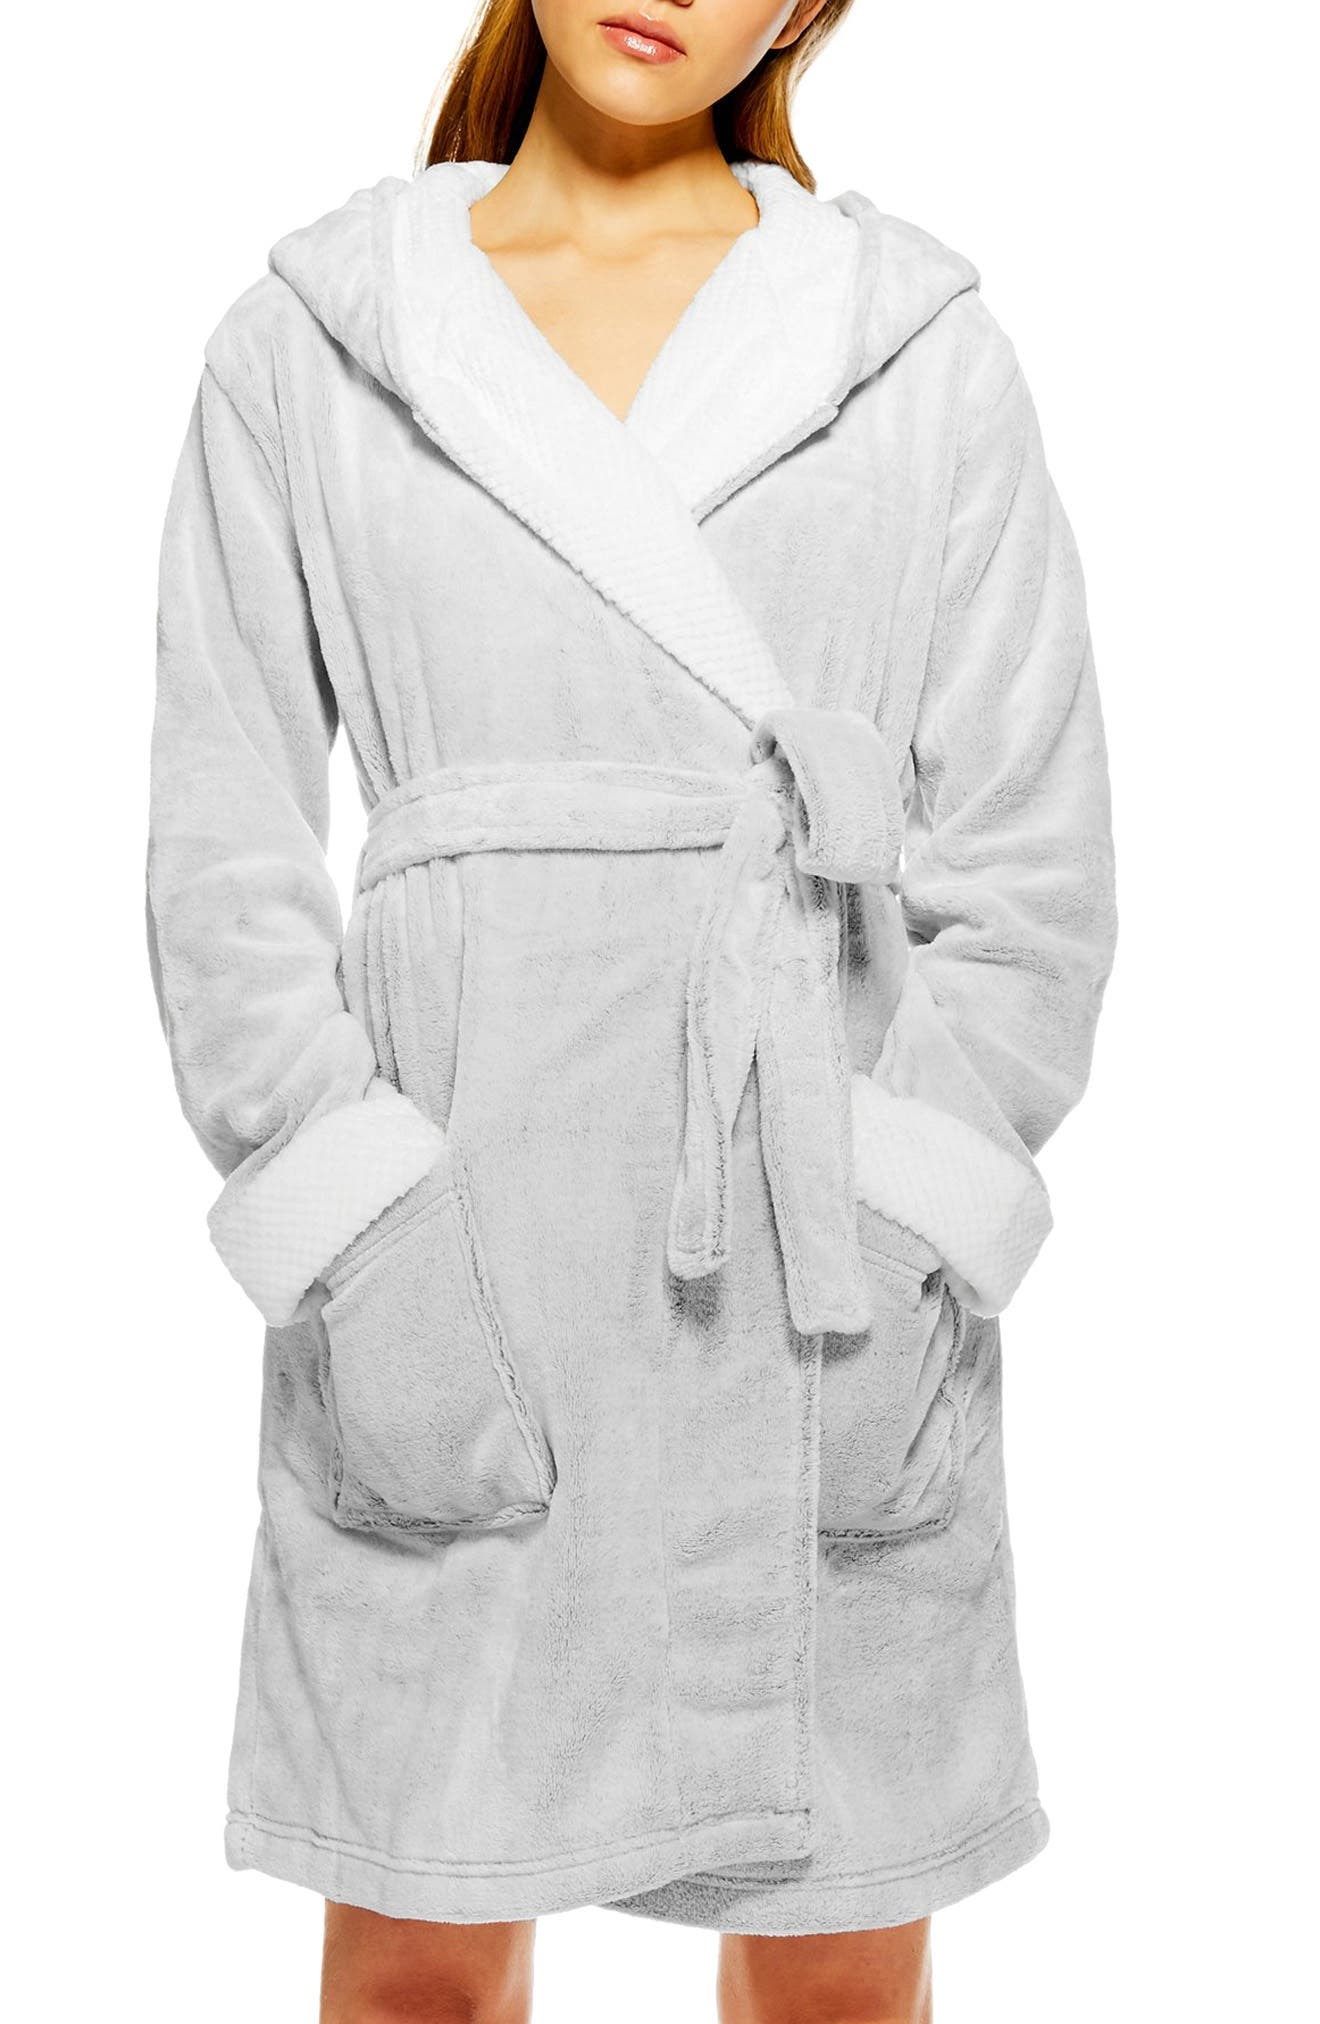 Frosted Waffle Hooded Fleece Robe,                             Main thumbnail 1, color,                             040